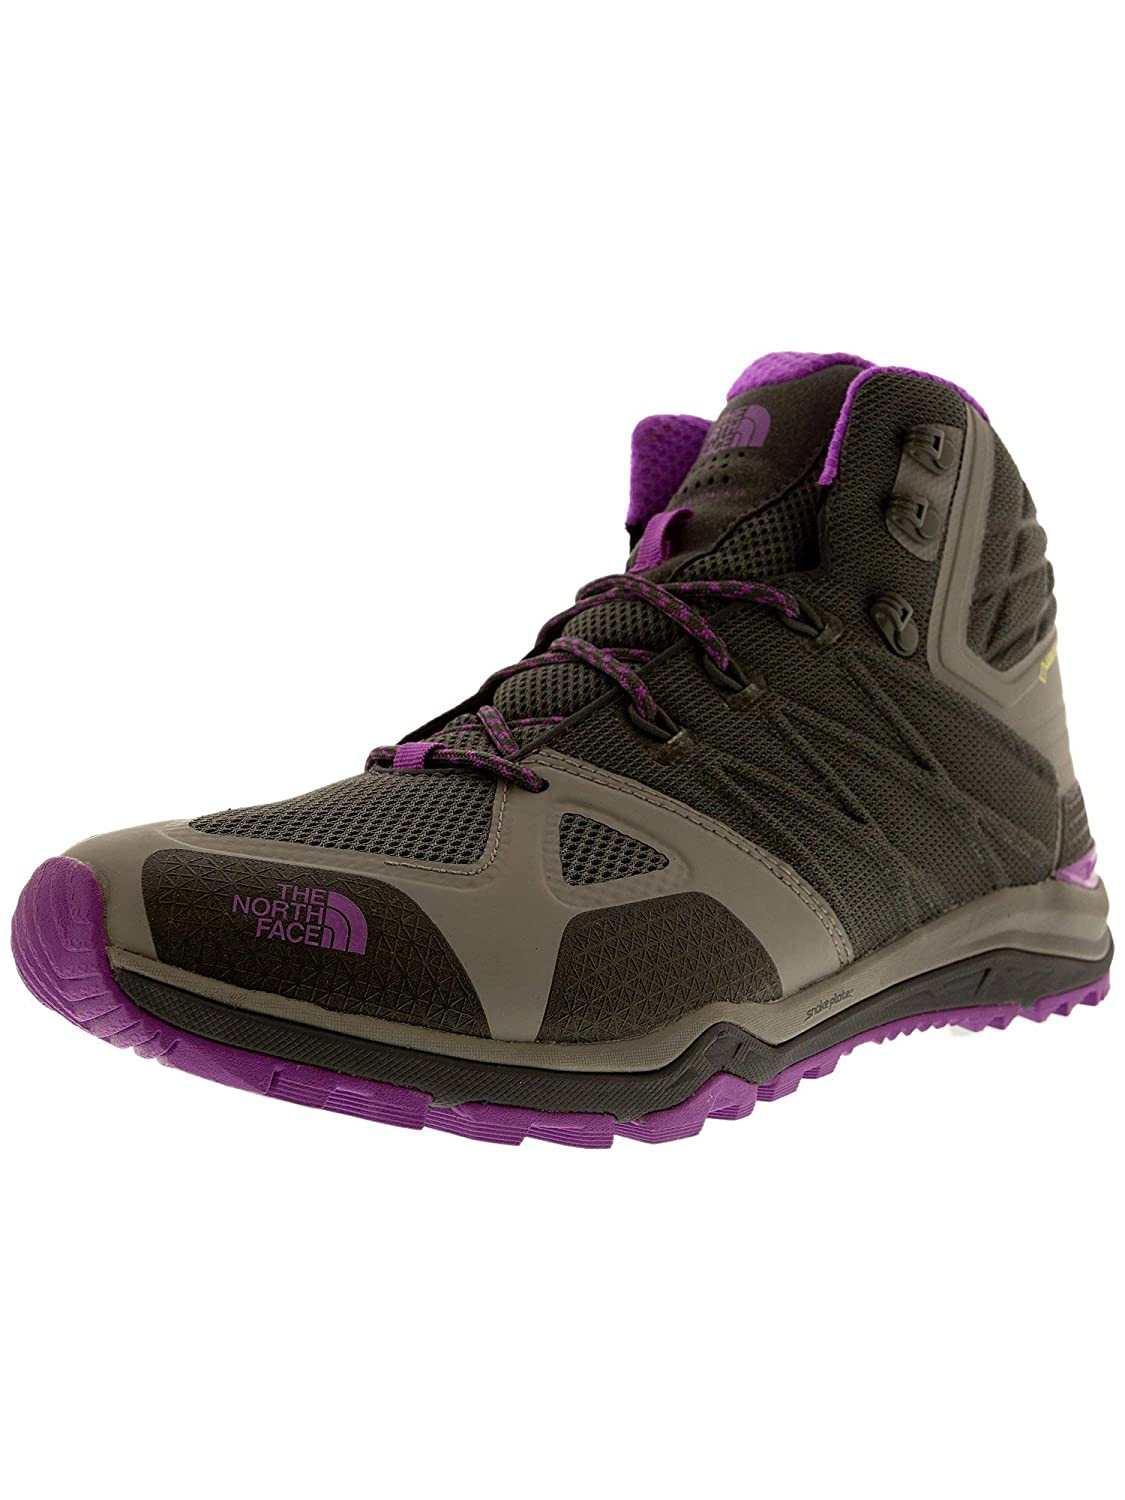 e85cf2966 The North Face Ultra Fastpack II Mid GTX Hiking Boot - Women's